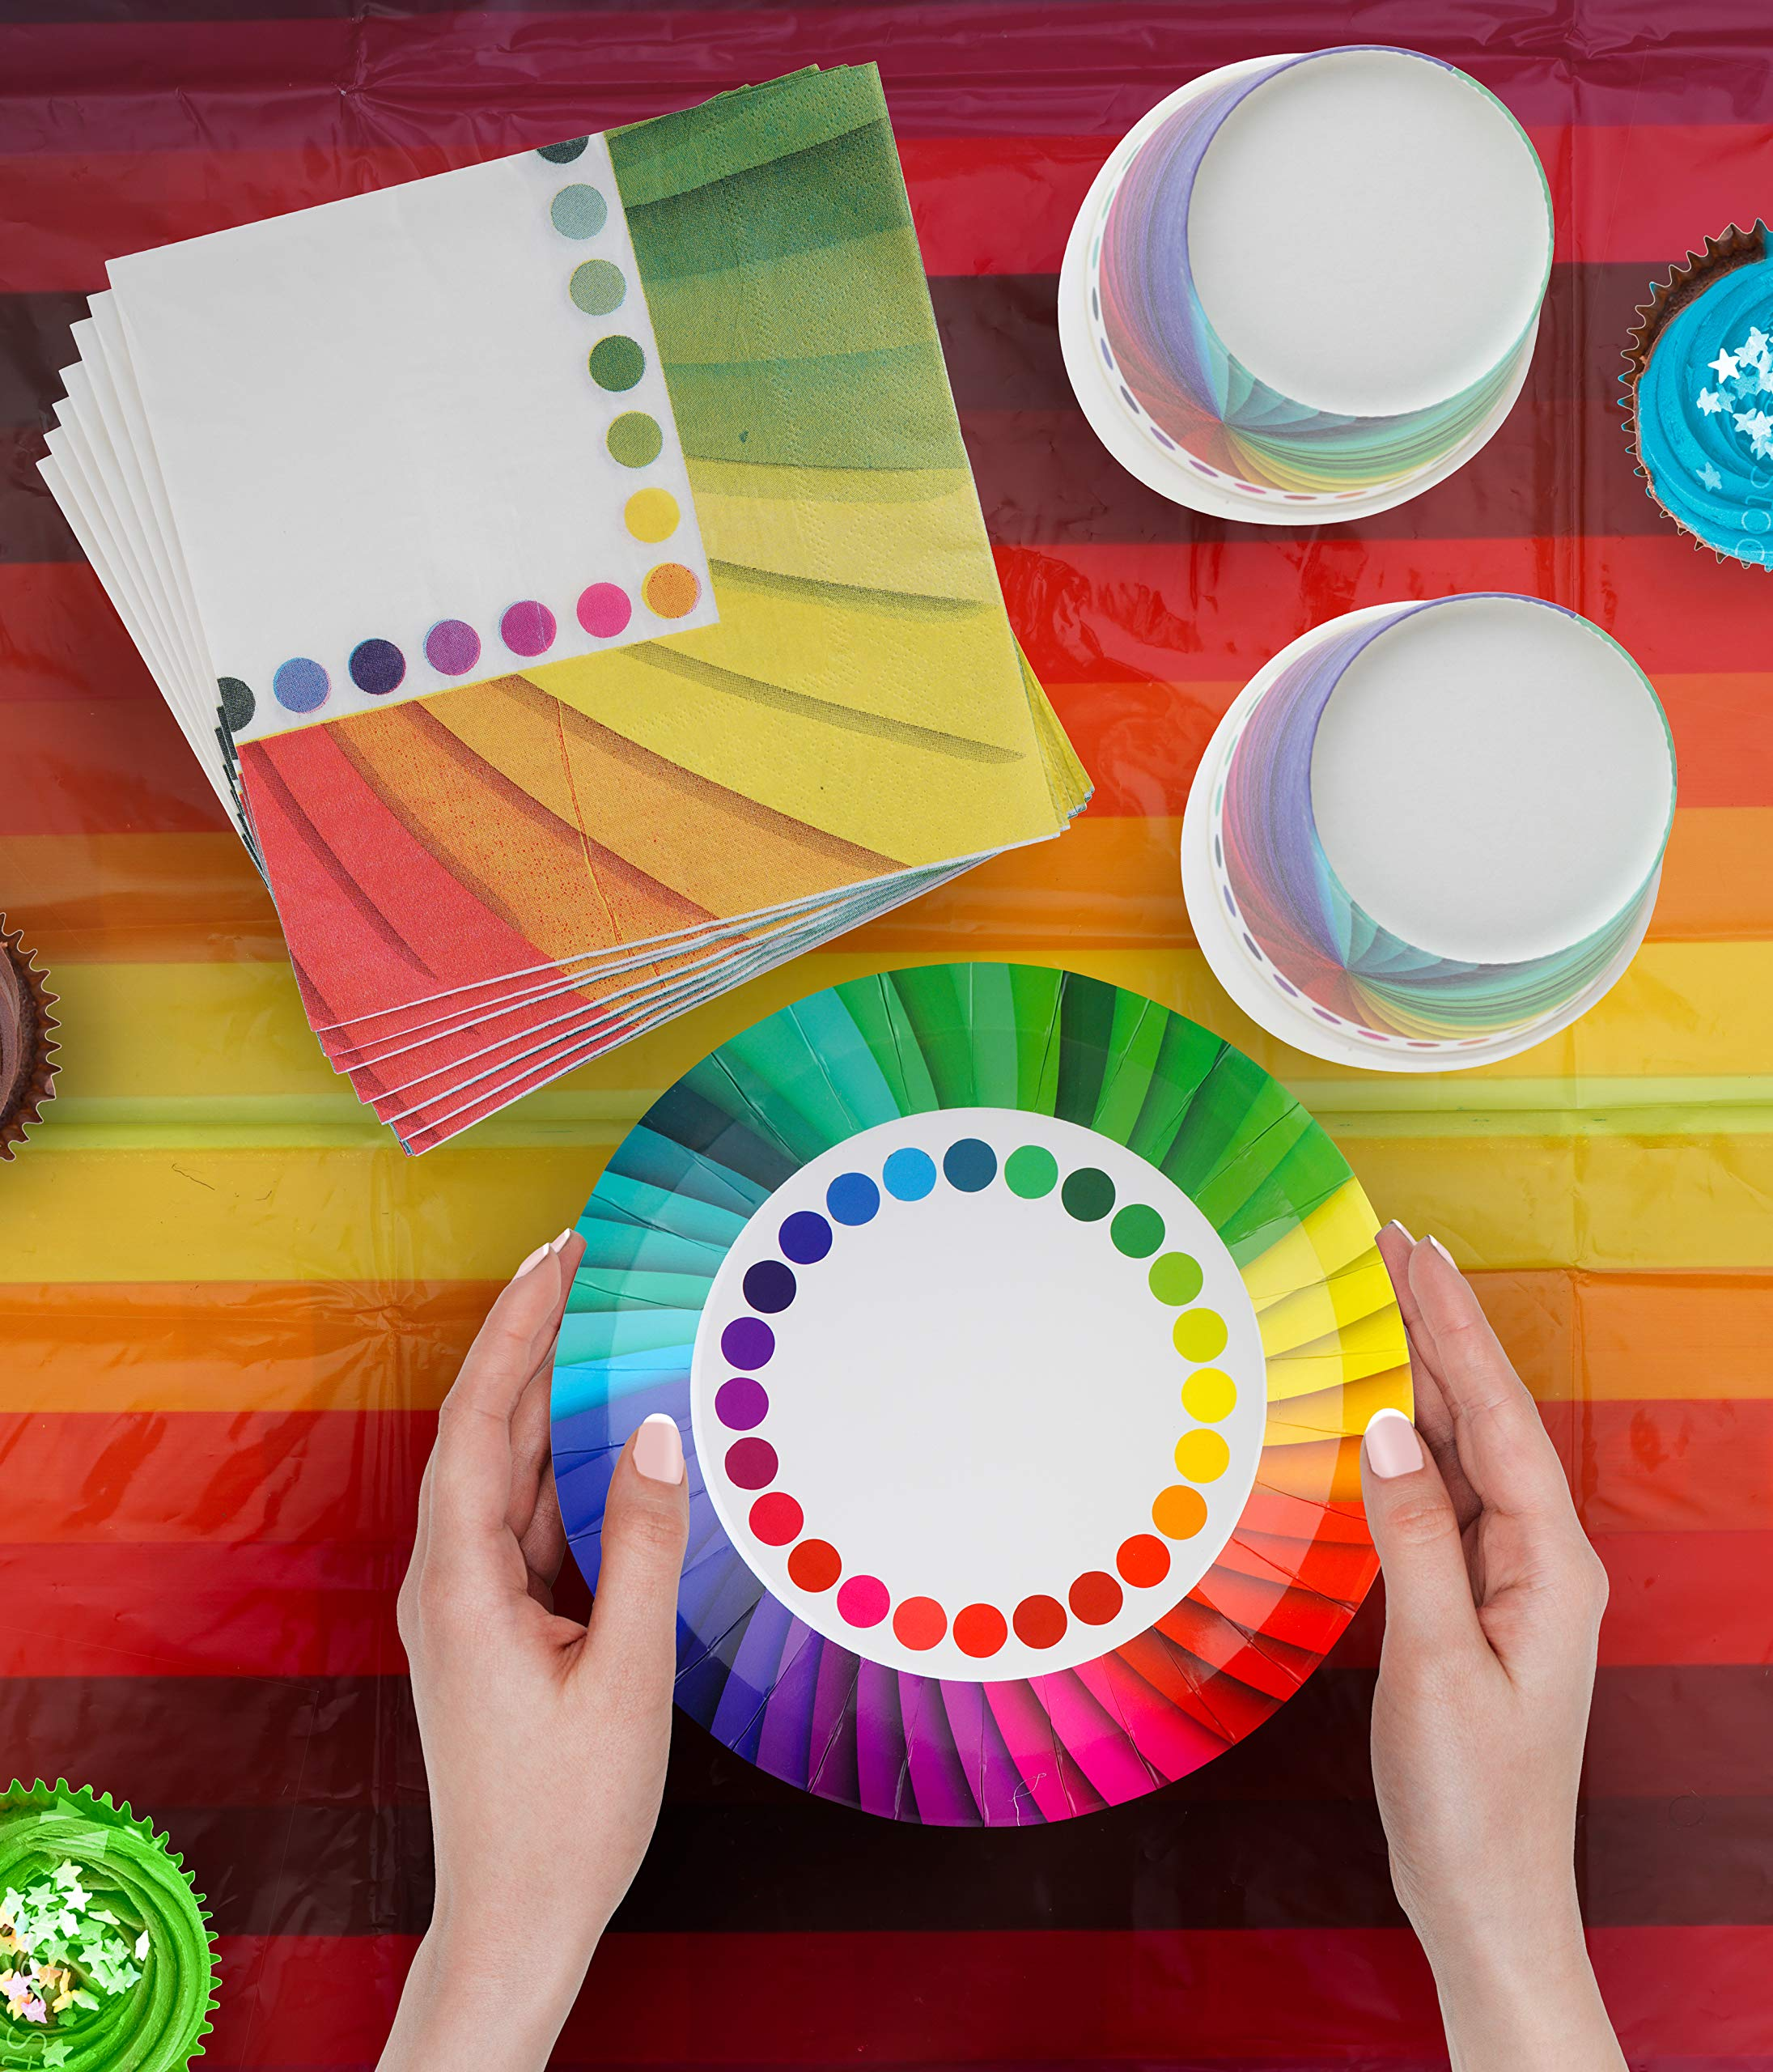 82 Piece Rainbow Party Set Including Banner, Plates, Cups, Napkins and Tablecloth, Serves 20 by Scale Rank (Image #3)